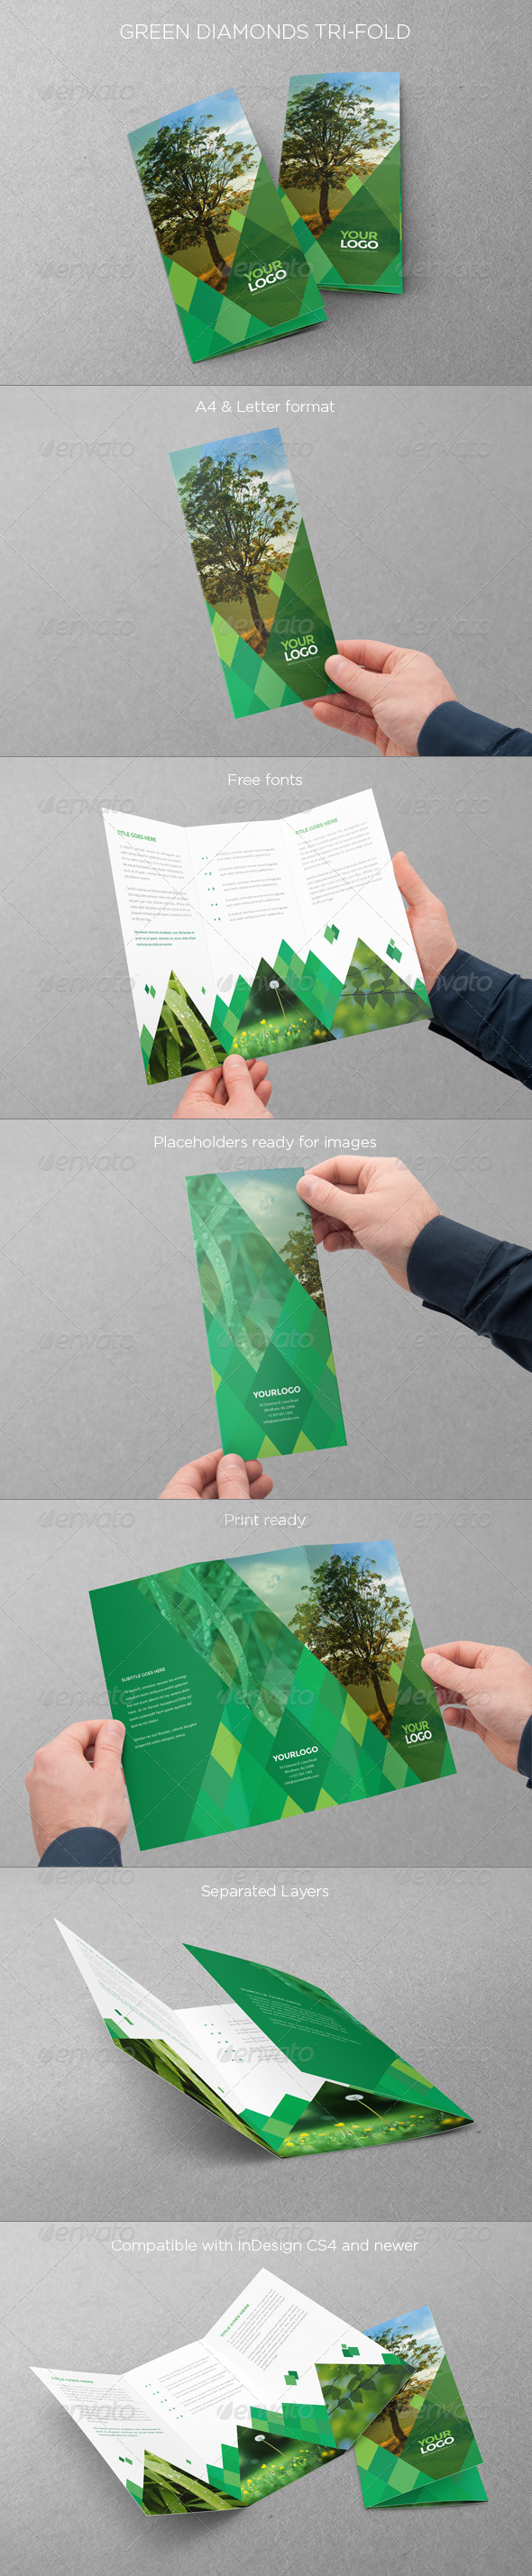 GraphicRiver Green Diamonds Trifold 7438199